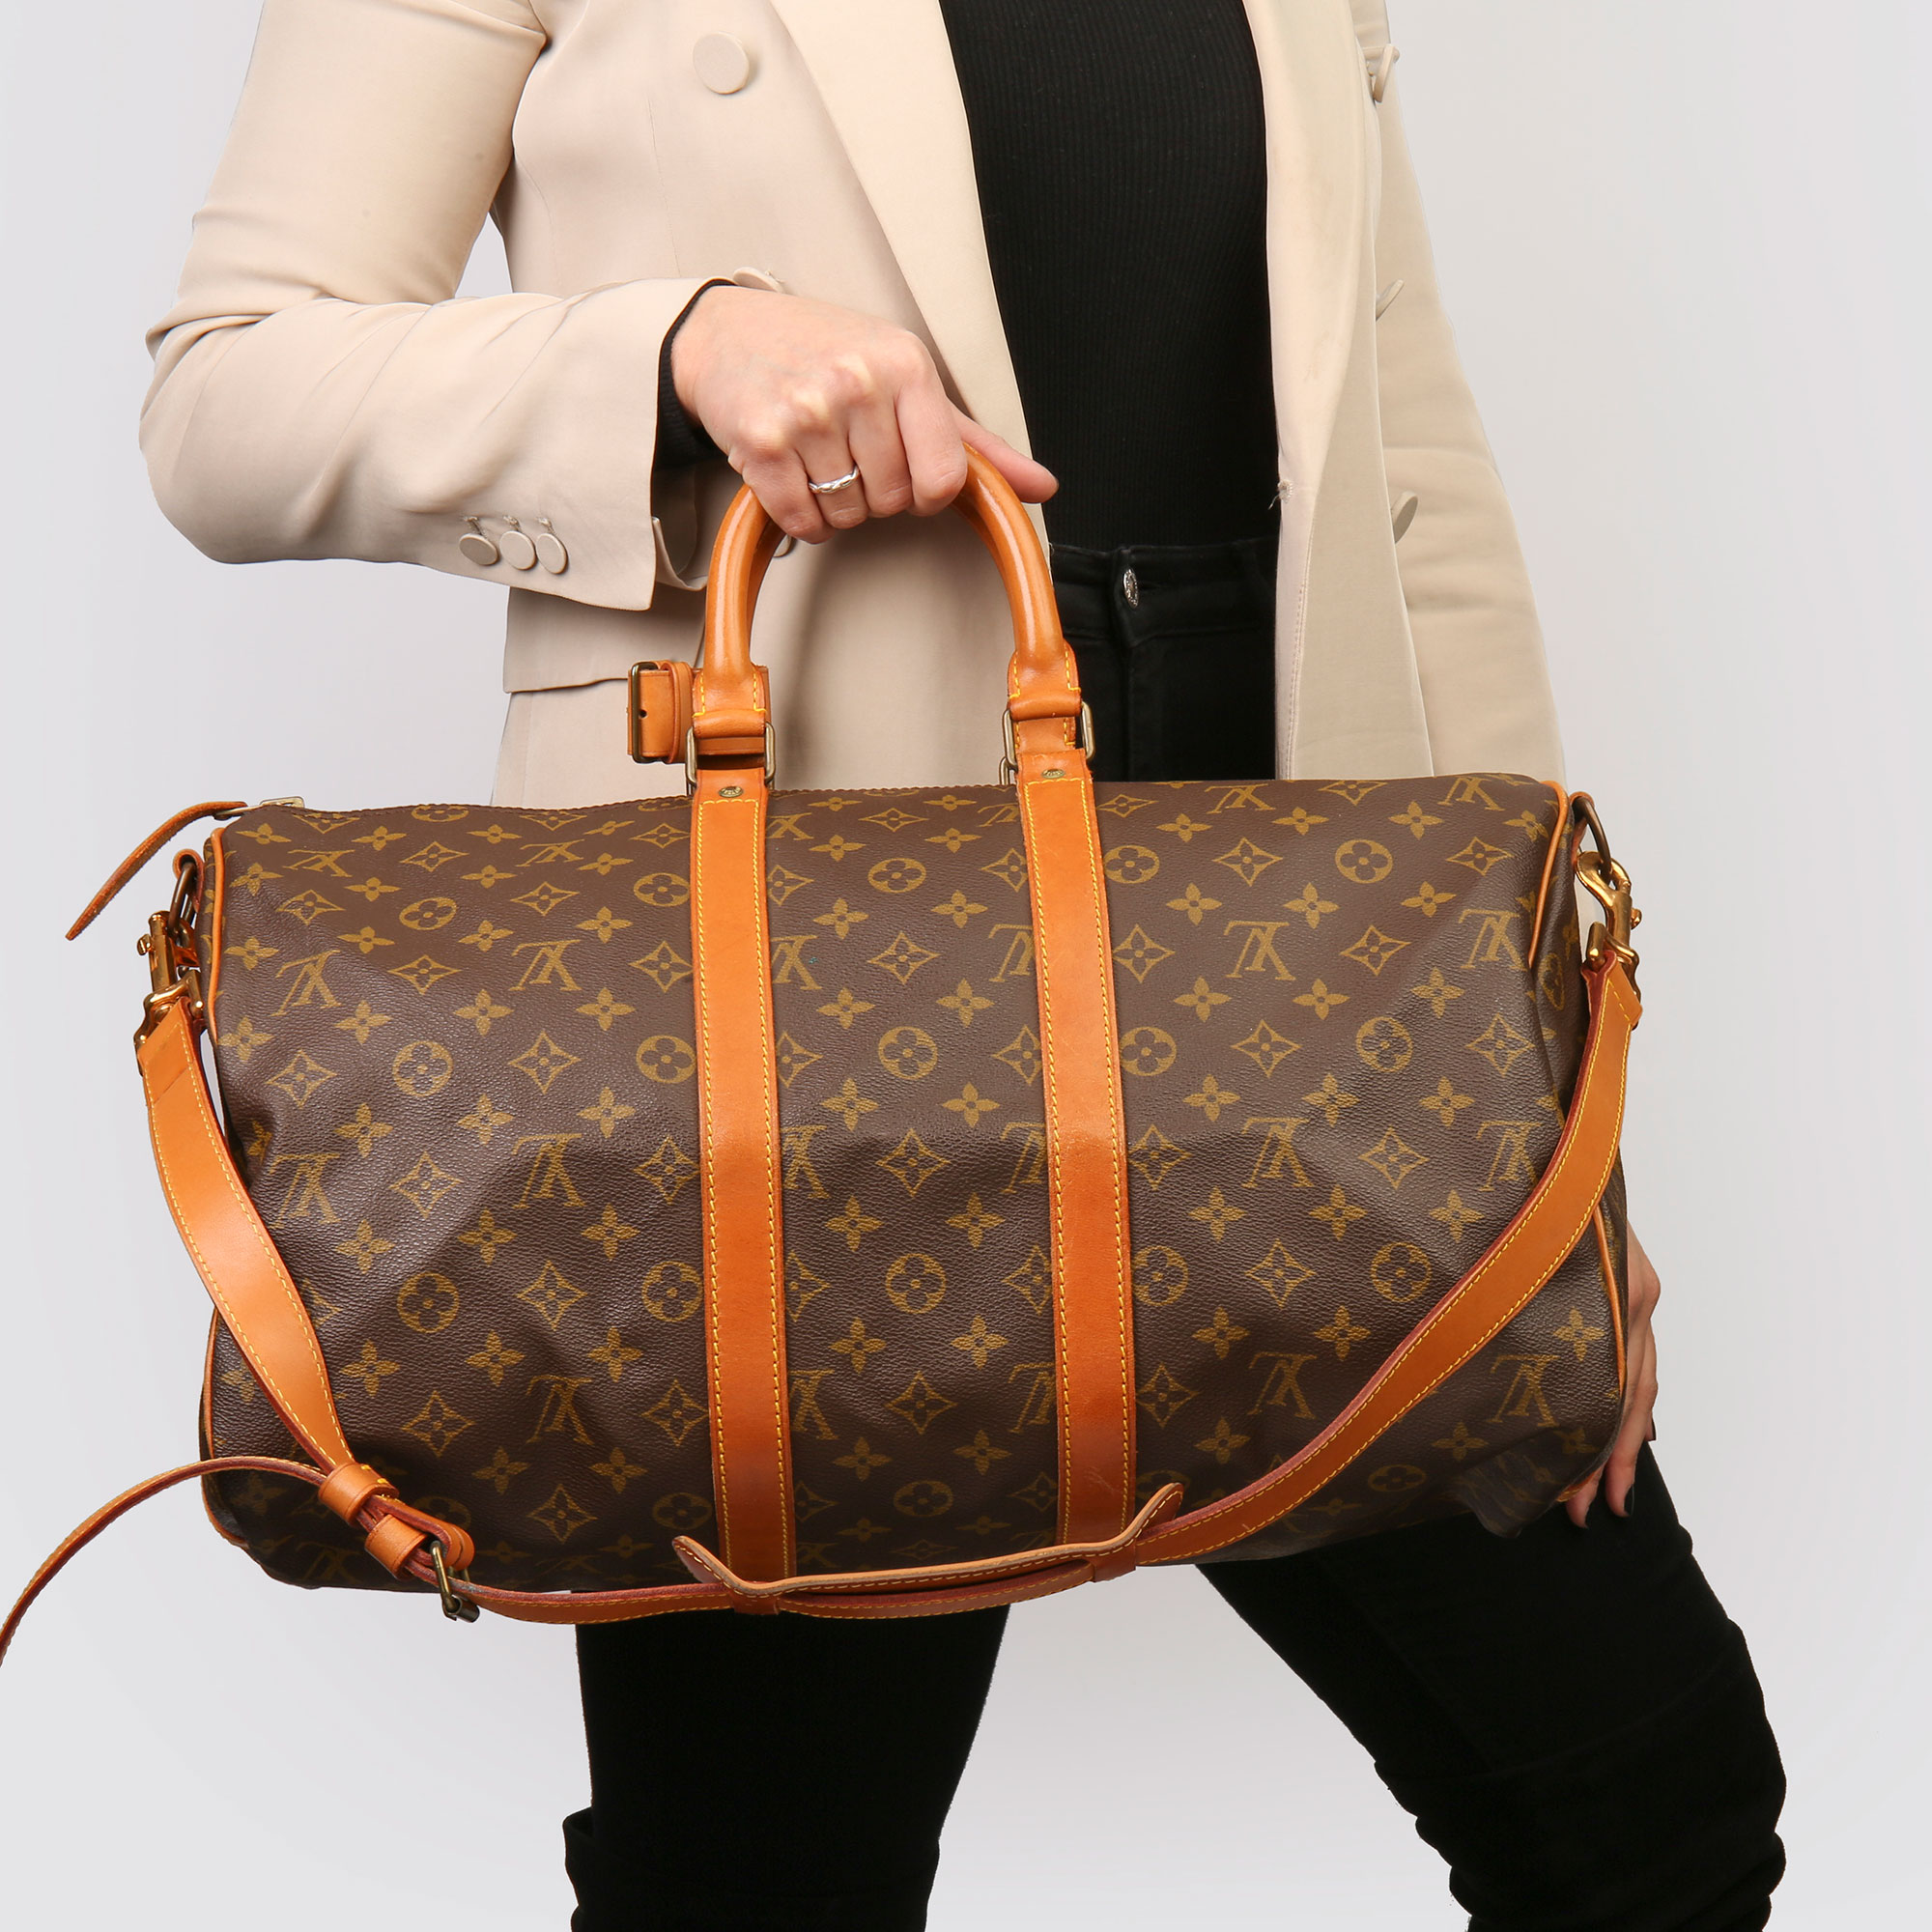 Louis Vuitton Brown Monogram Coated Canvas & Vachetta Leather Vintage Keepall 45 Bandoulire - Image 2 of 13